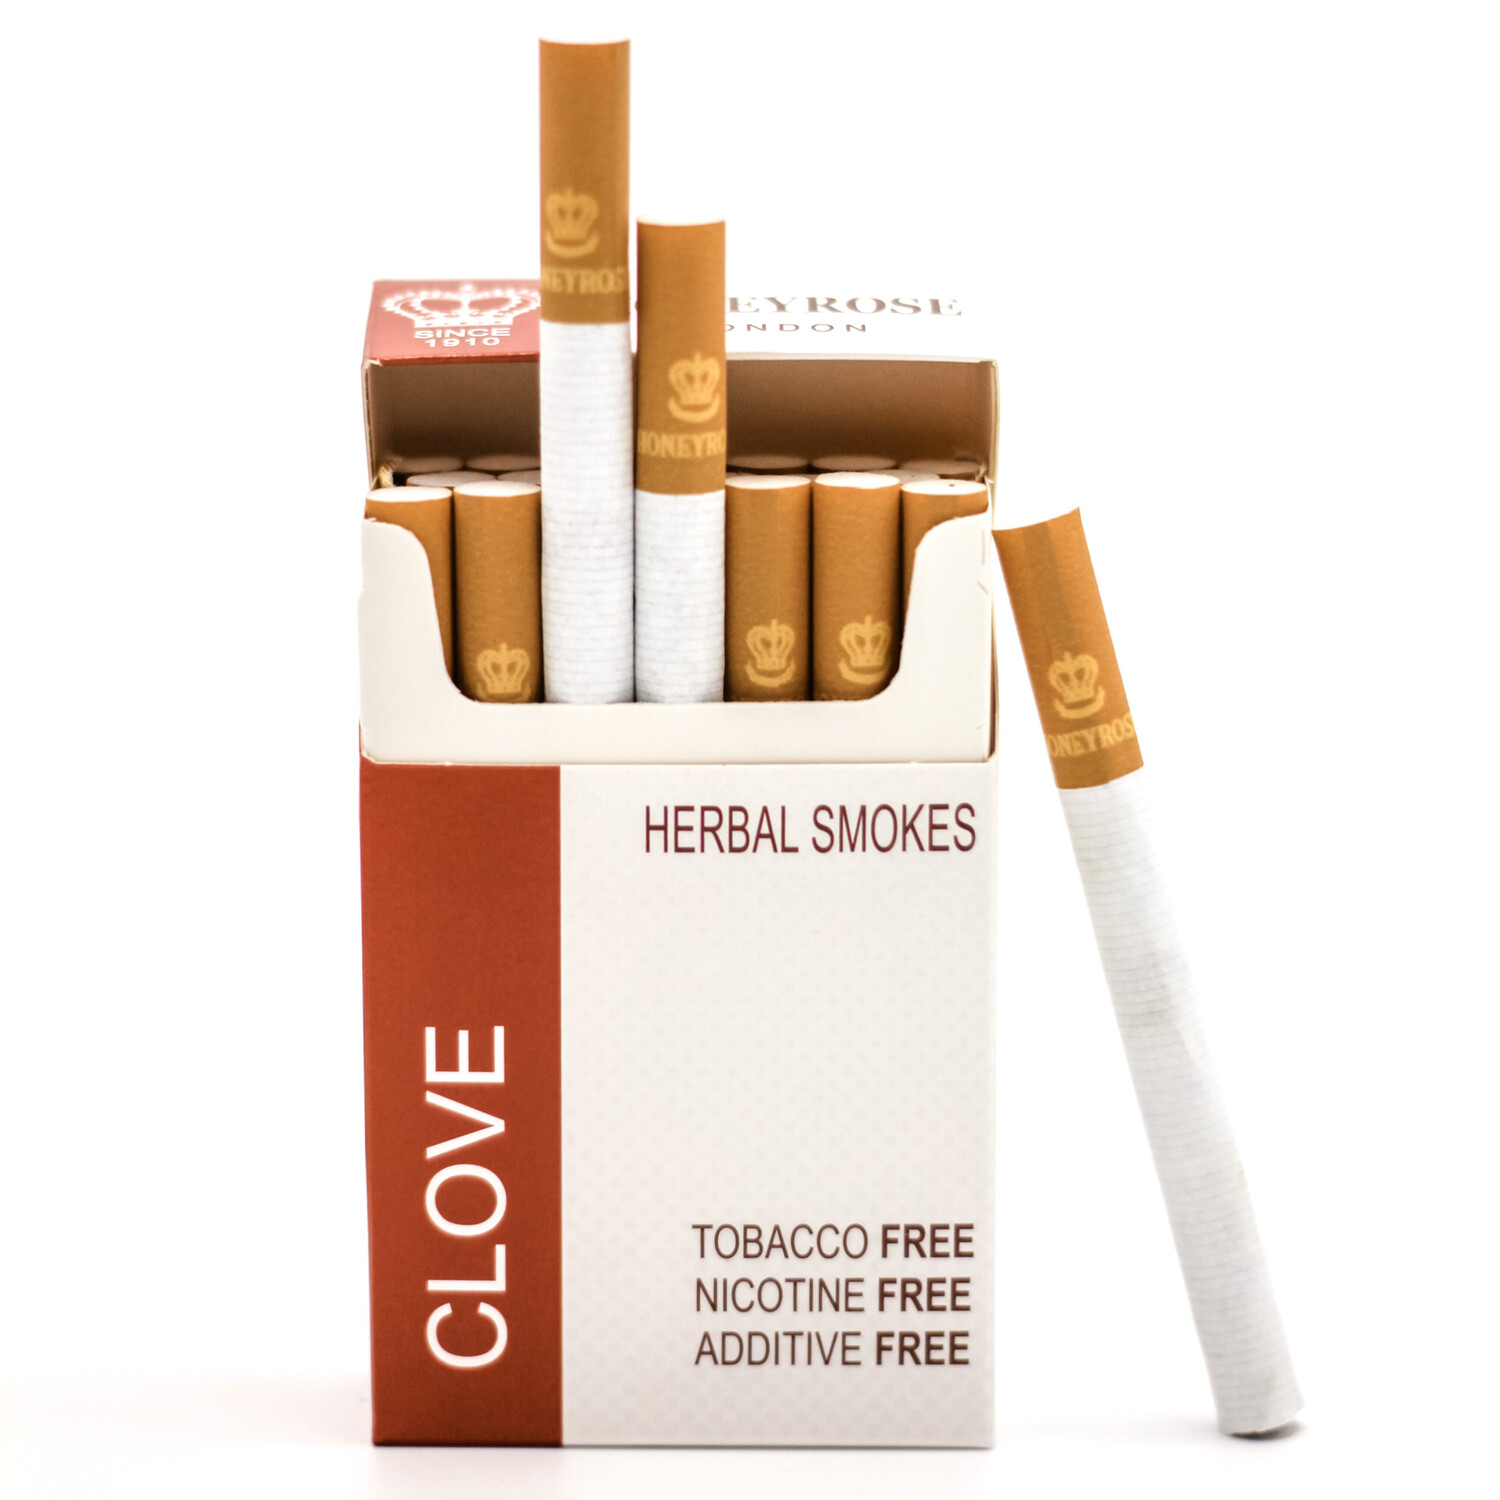 Honeyrose CLOVE Herbal Smokes